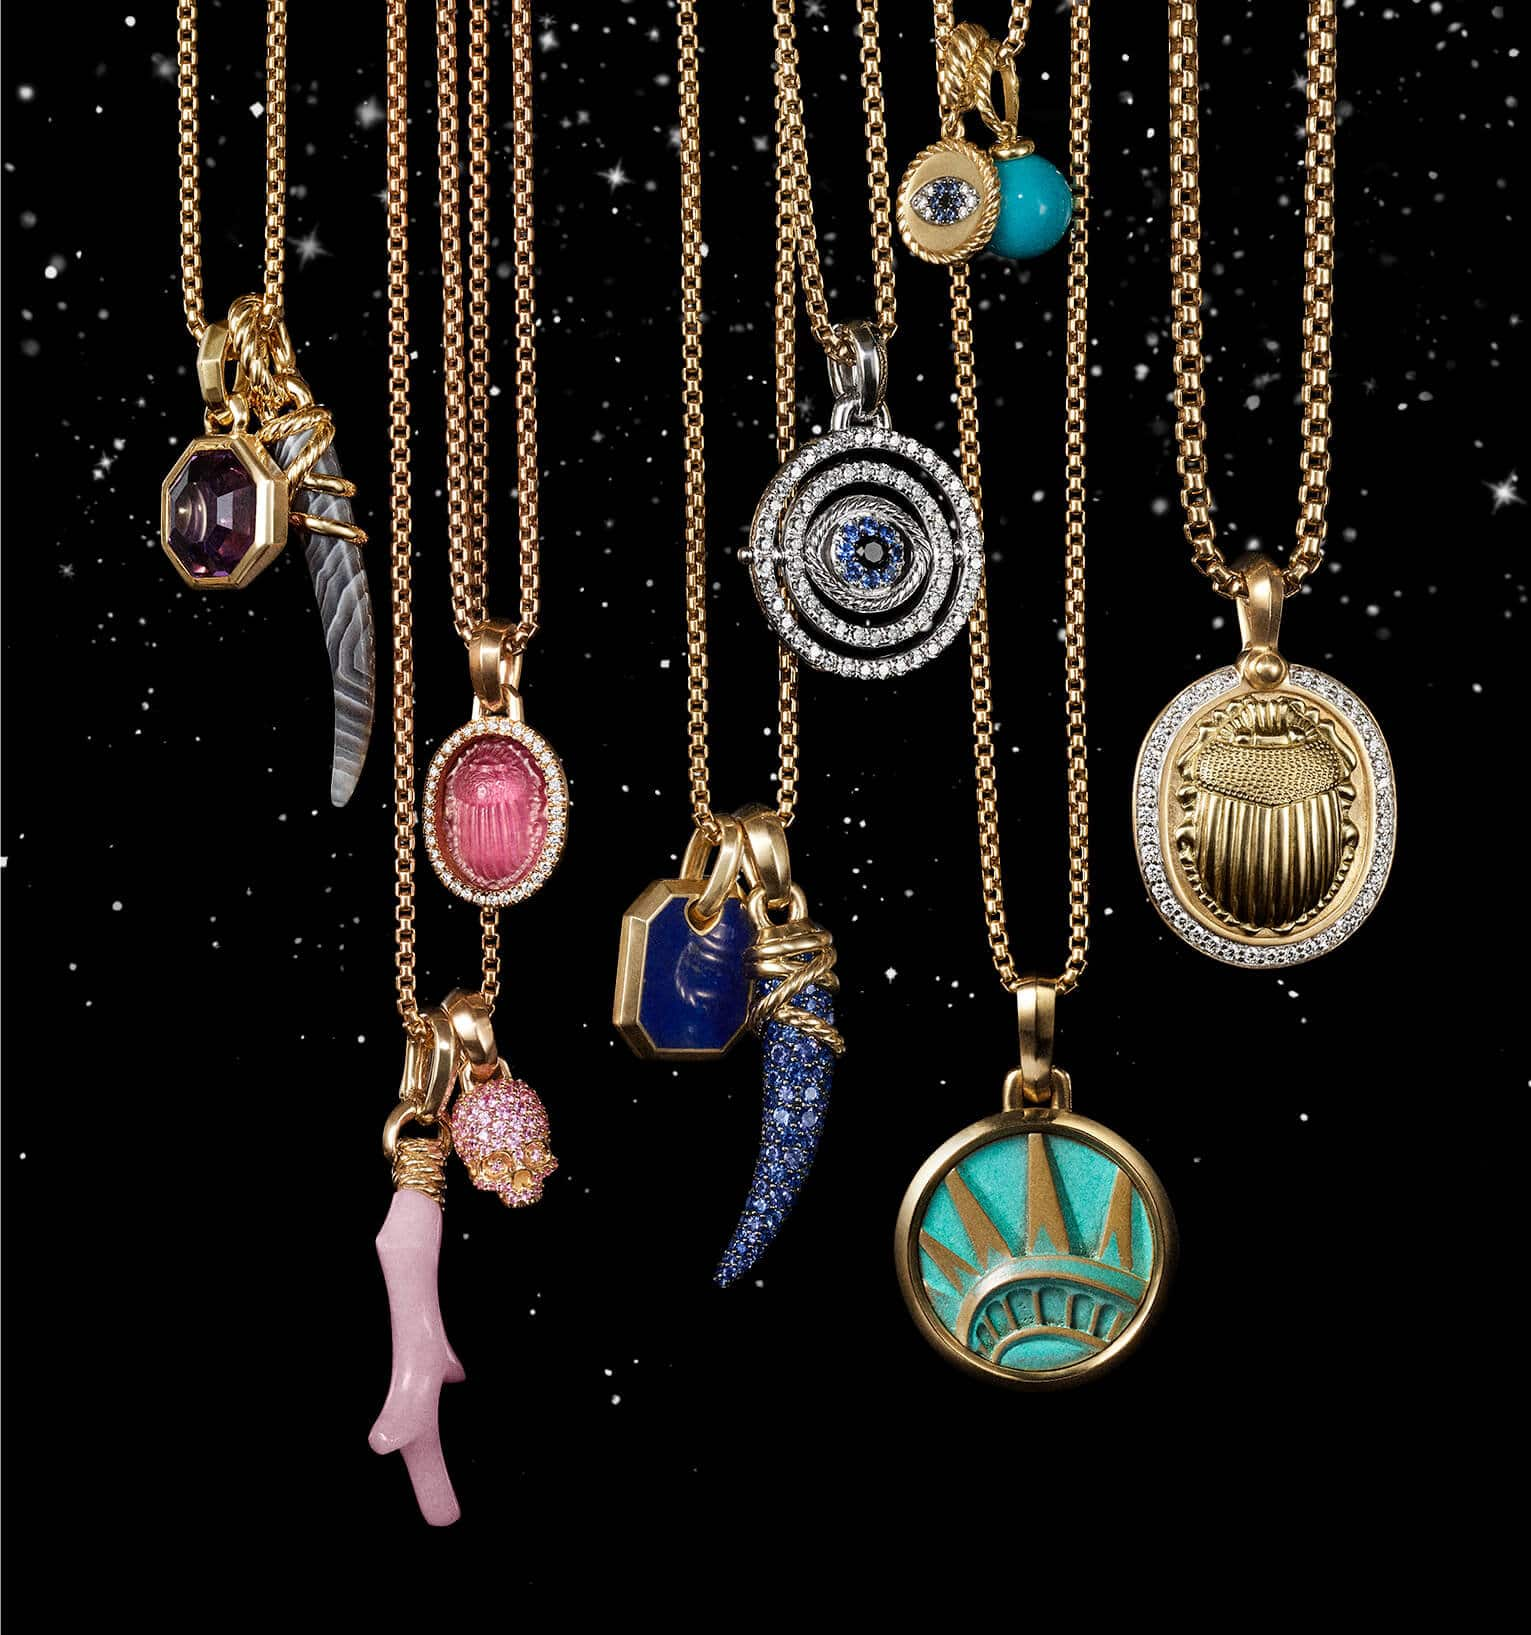 A color photograph shows 10 David Yurman amulet pendants hanging from a horizontal row of chain necklaces in front of a starry night sky. The women's jewelry is crafted from 18K yellow gold or sterling silver with or without pavé diamonds and an array of colored gemstones. The pendants come in various shapes such as a branch of coral, horn, dagger, or skull or depict a multitude of images such as a scarab and the Statue of Liberty's crown.